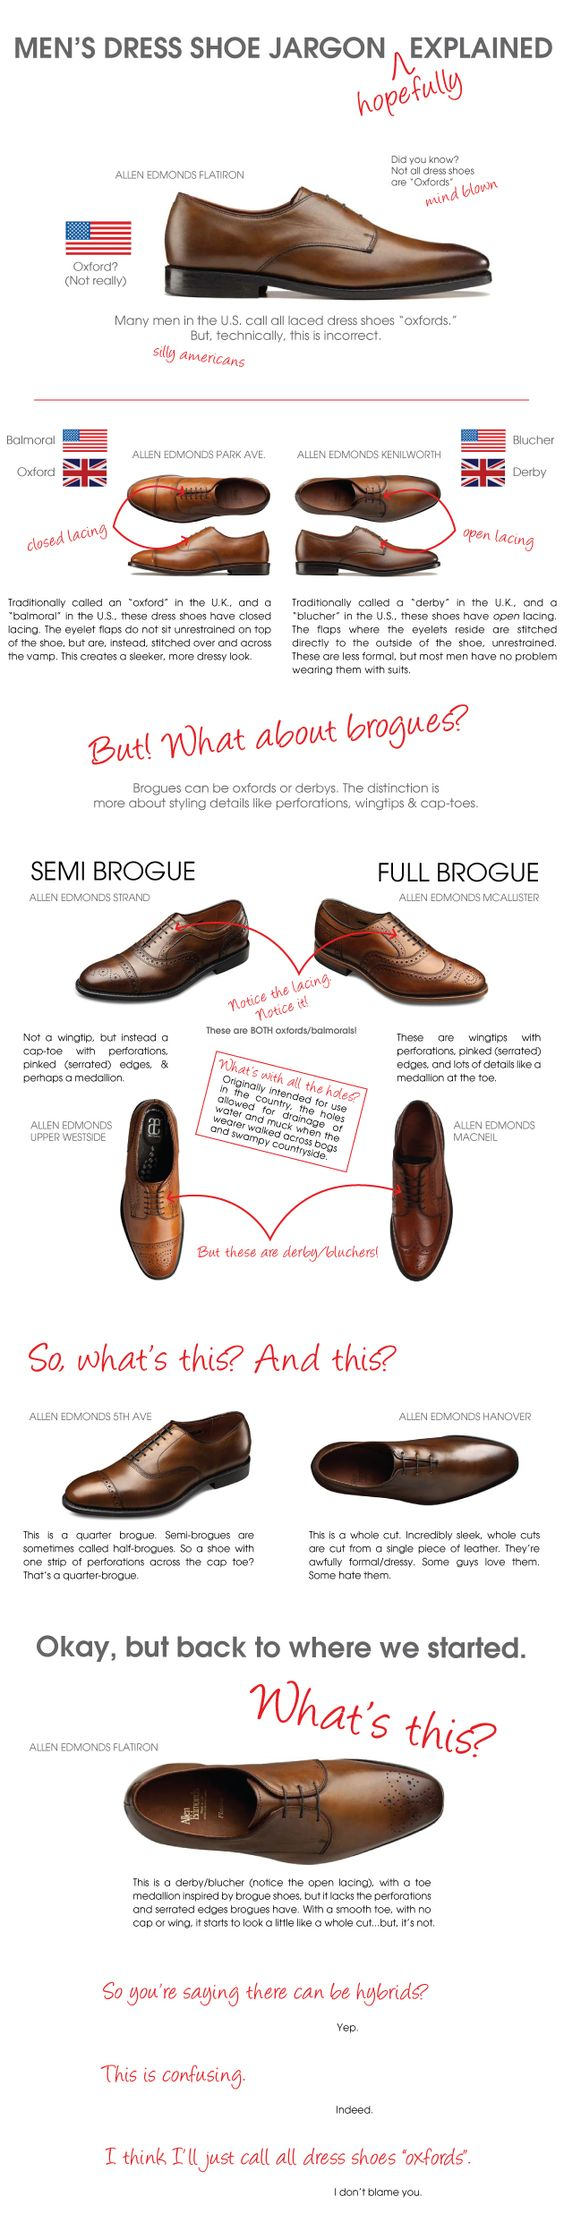 How to decipher shoe jargon